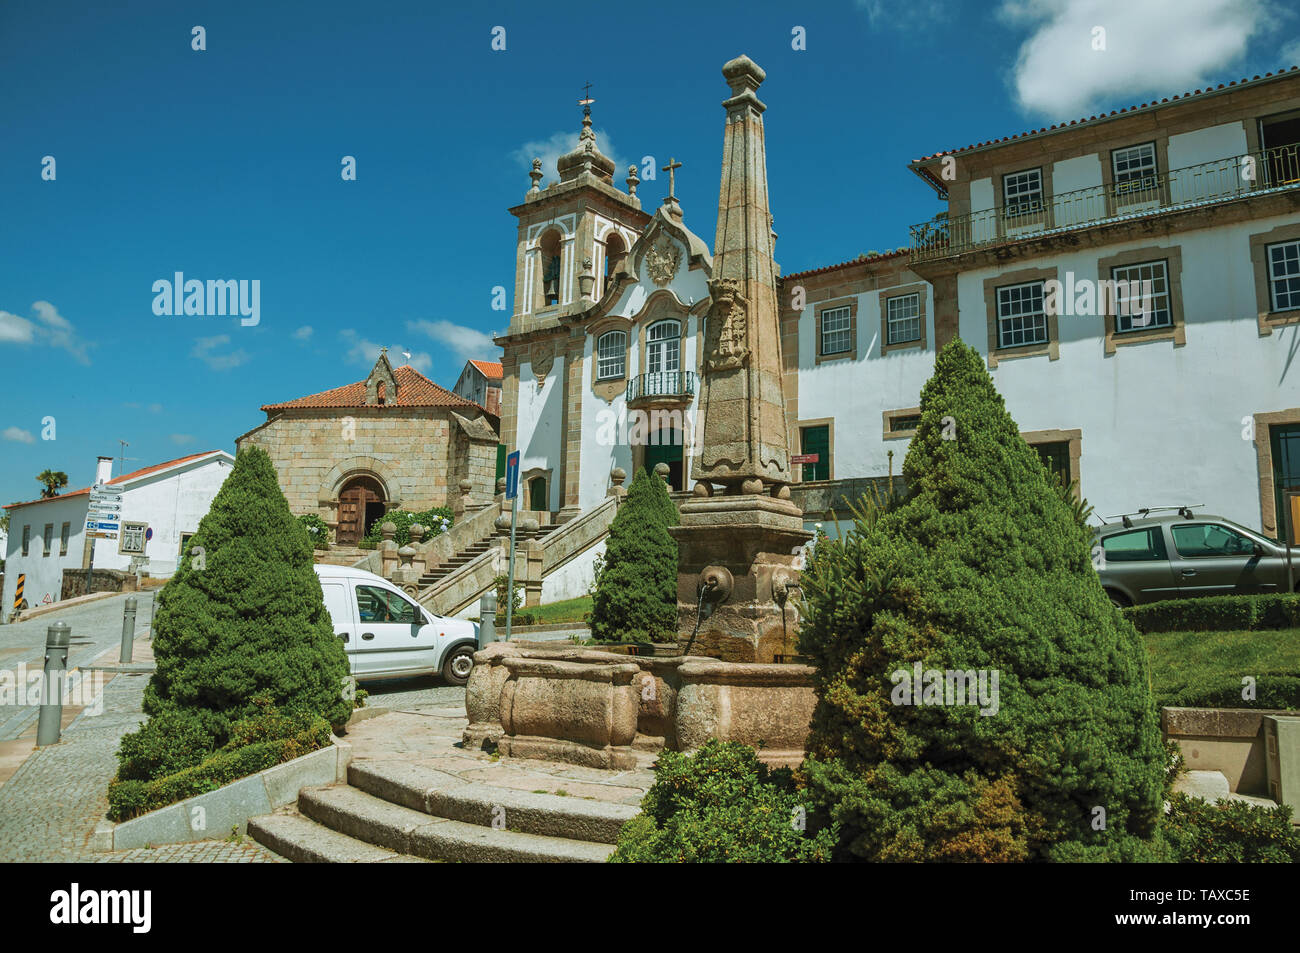 Baroque Church of the Misericordia in front of square with stone pillory at Seia. A nice village of Portugal also known for its delicious cheese. - Stock Image